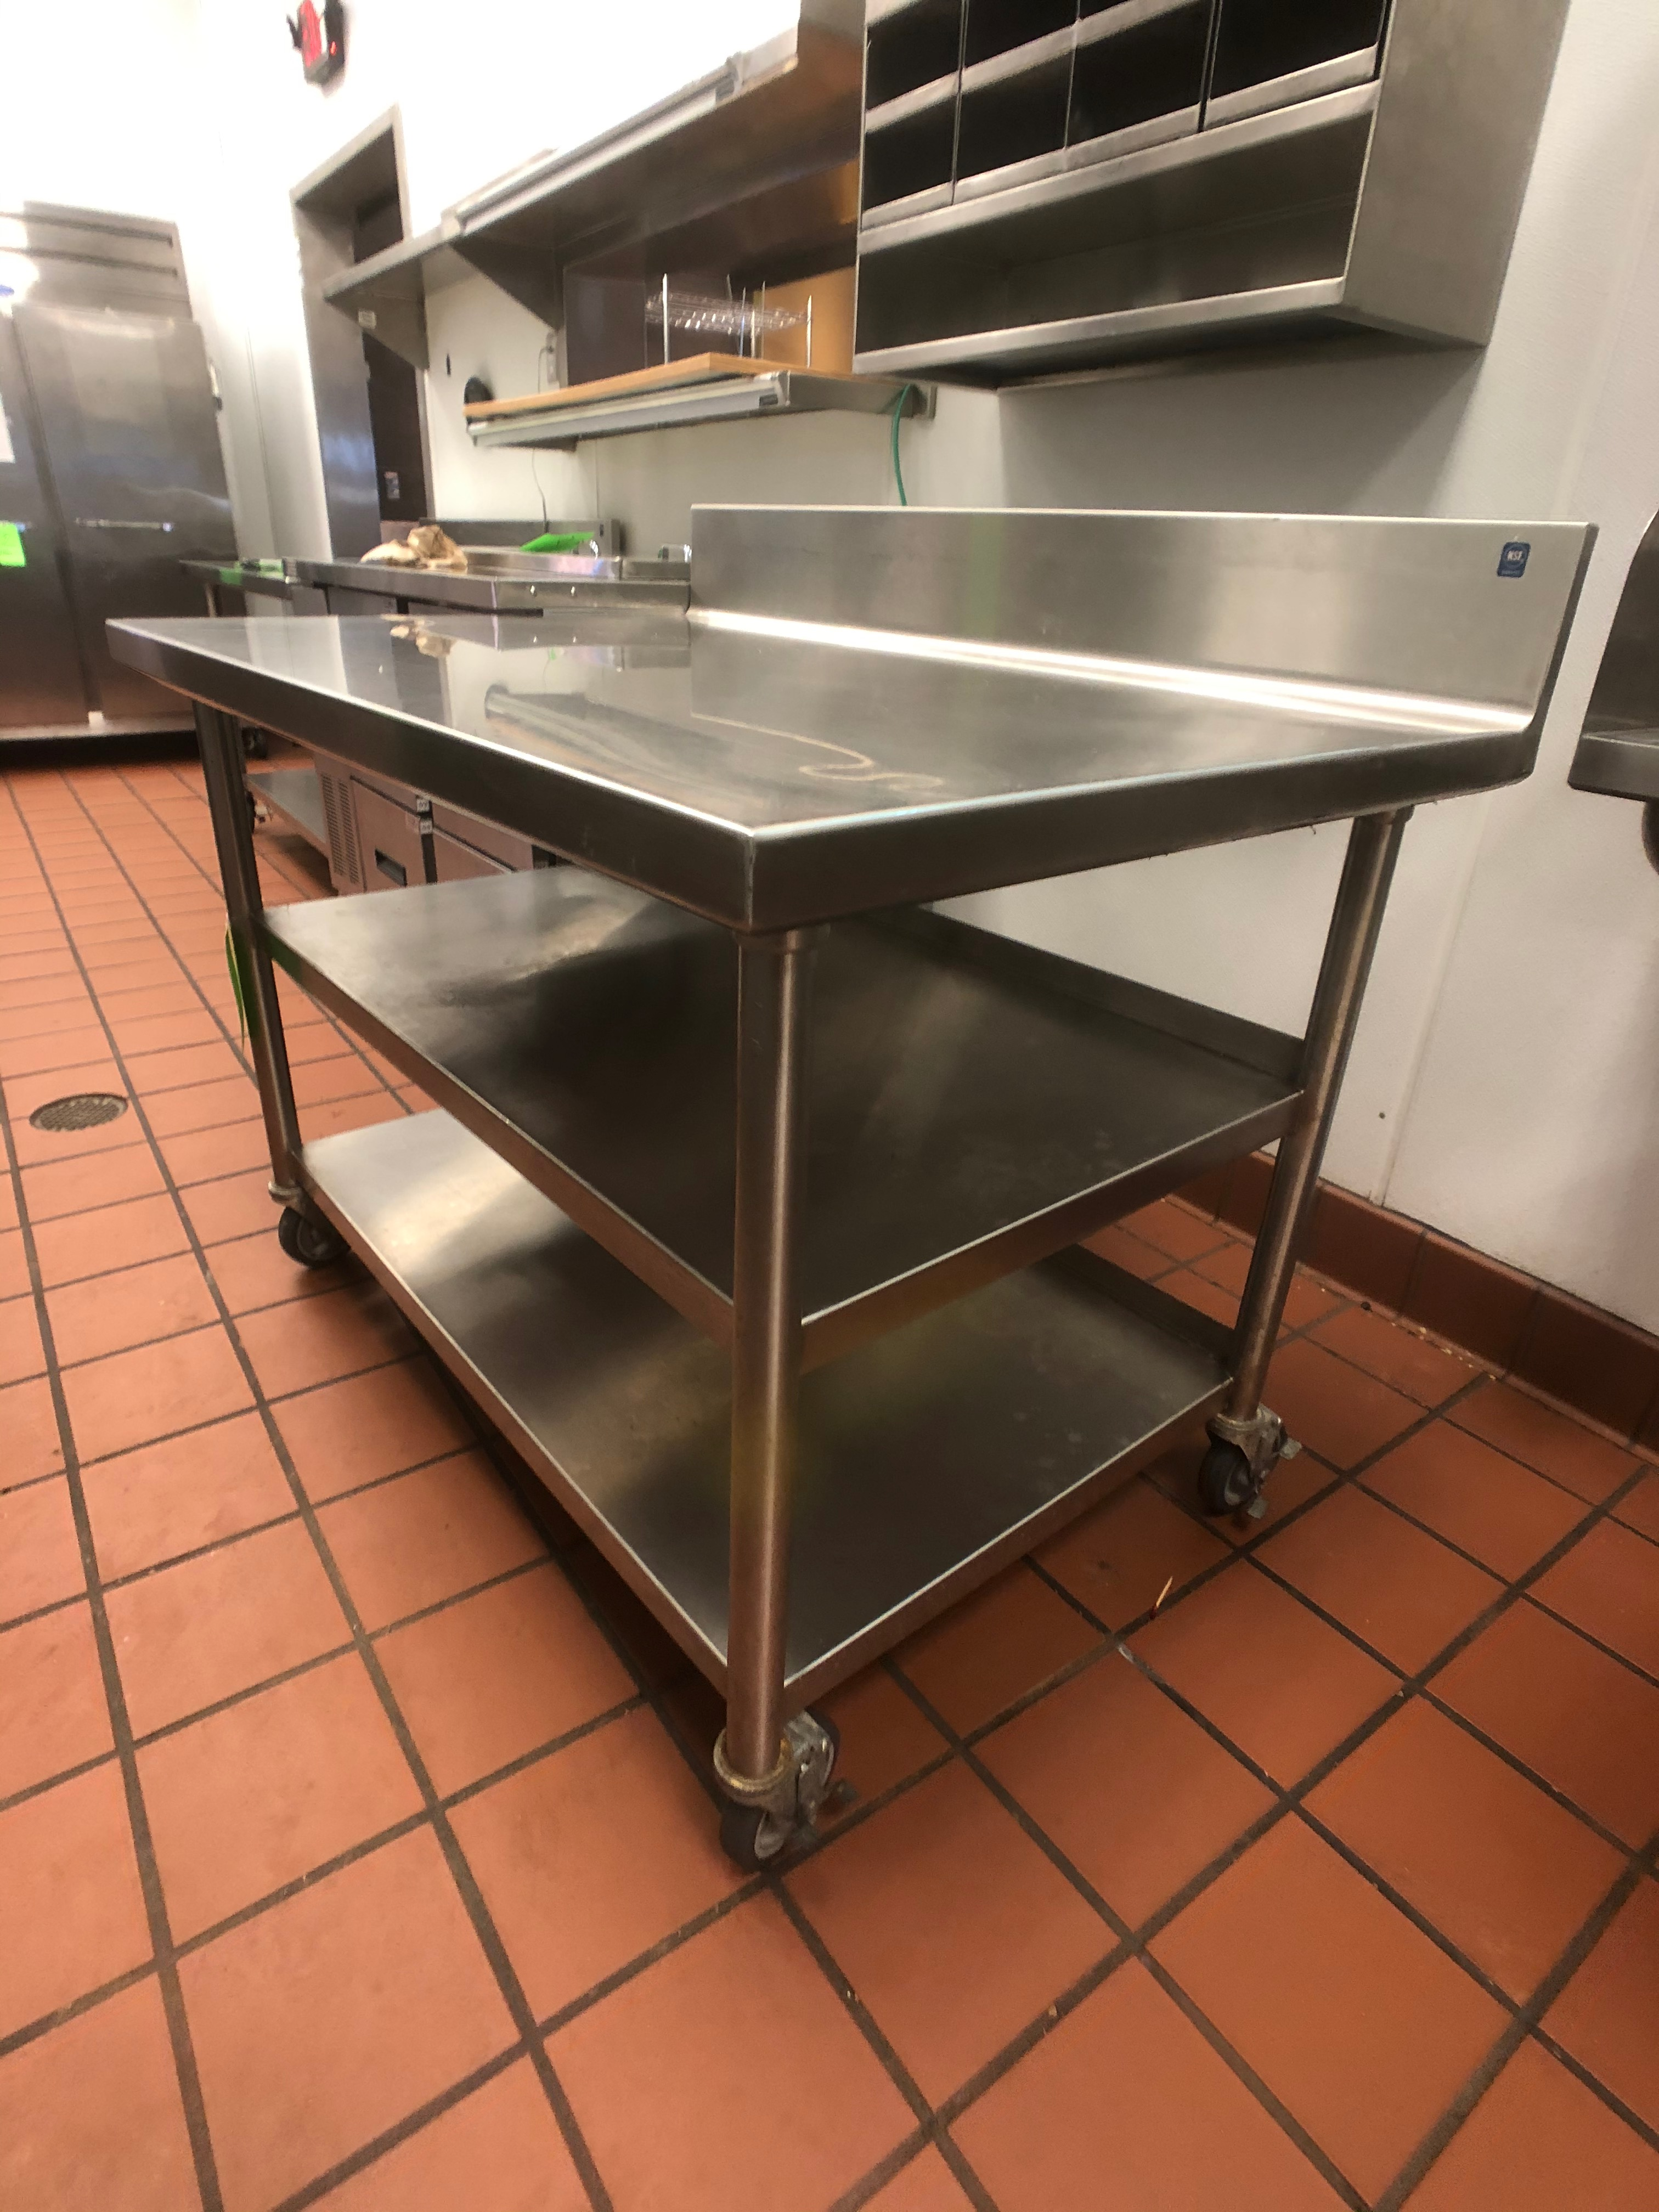 """S/S Table with Racks and S/S Backsplash, Approx. 48"""" L x 32"""" W, Mounted on Casters - Image 2 of 2"""